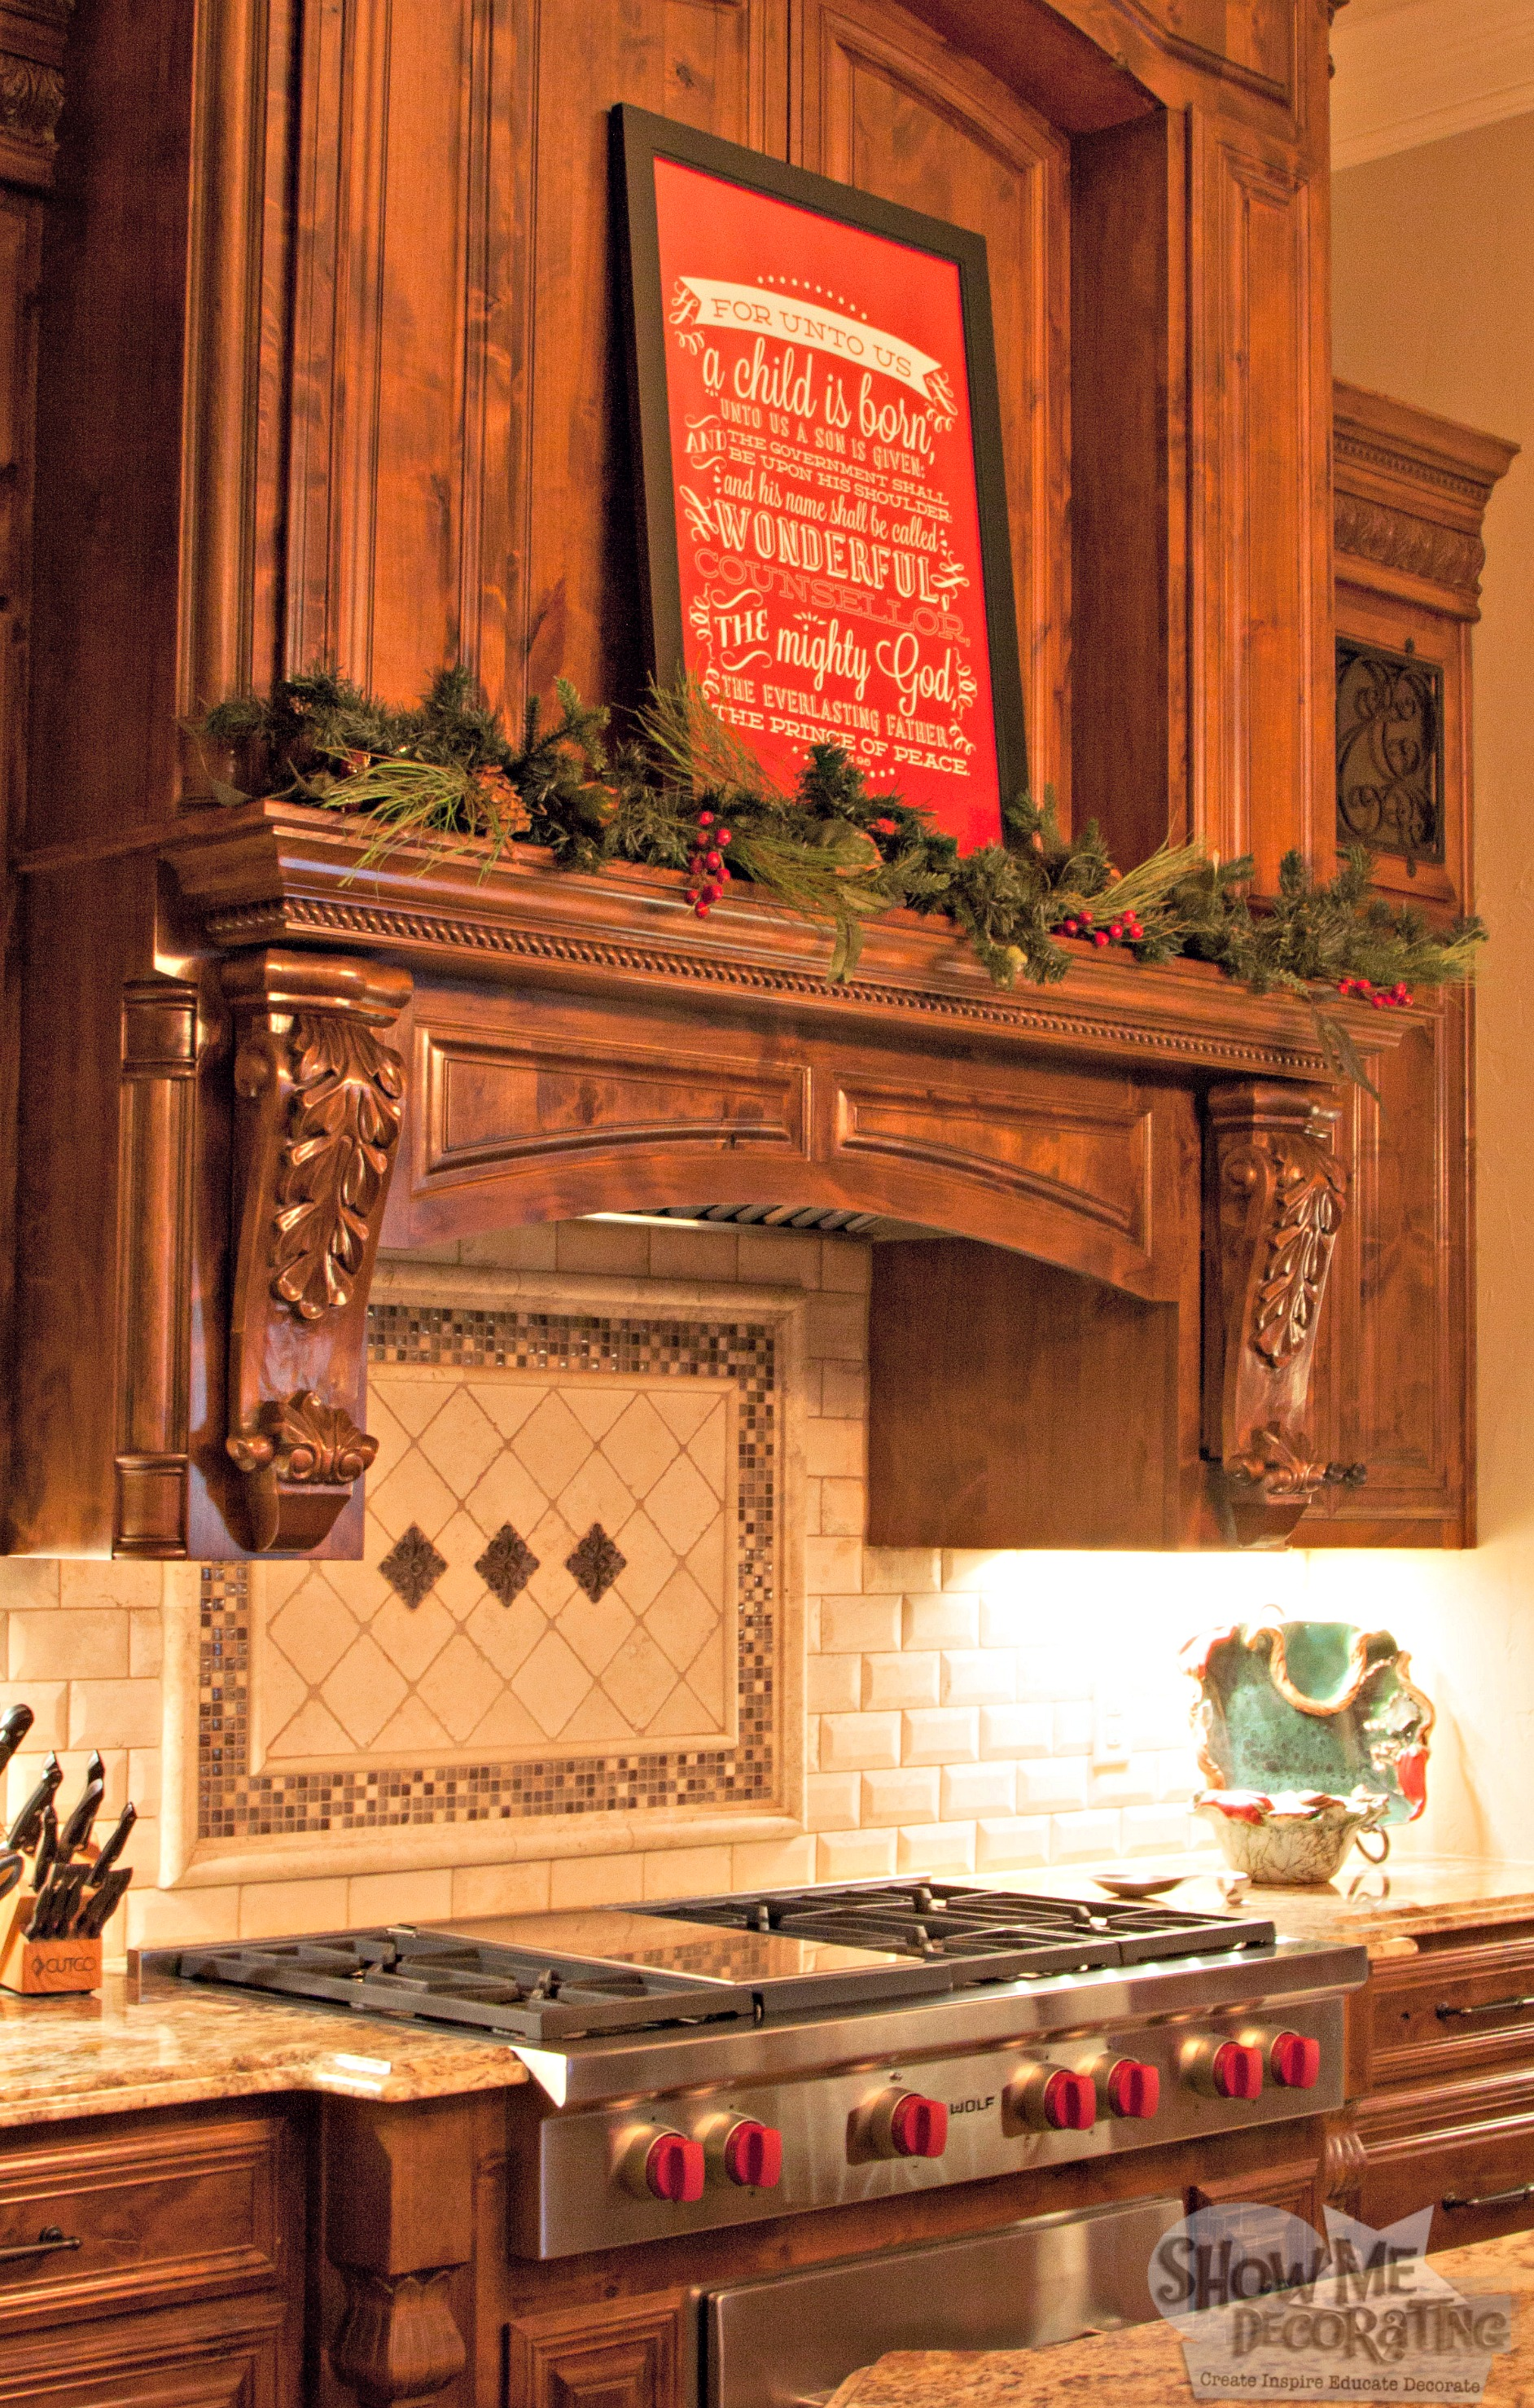 Everyday decorating tips show me decorating for Show me some kitchen designs